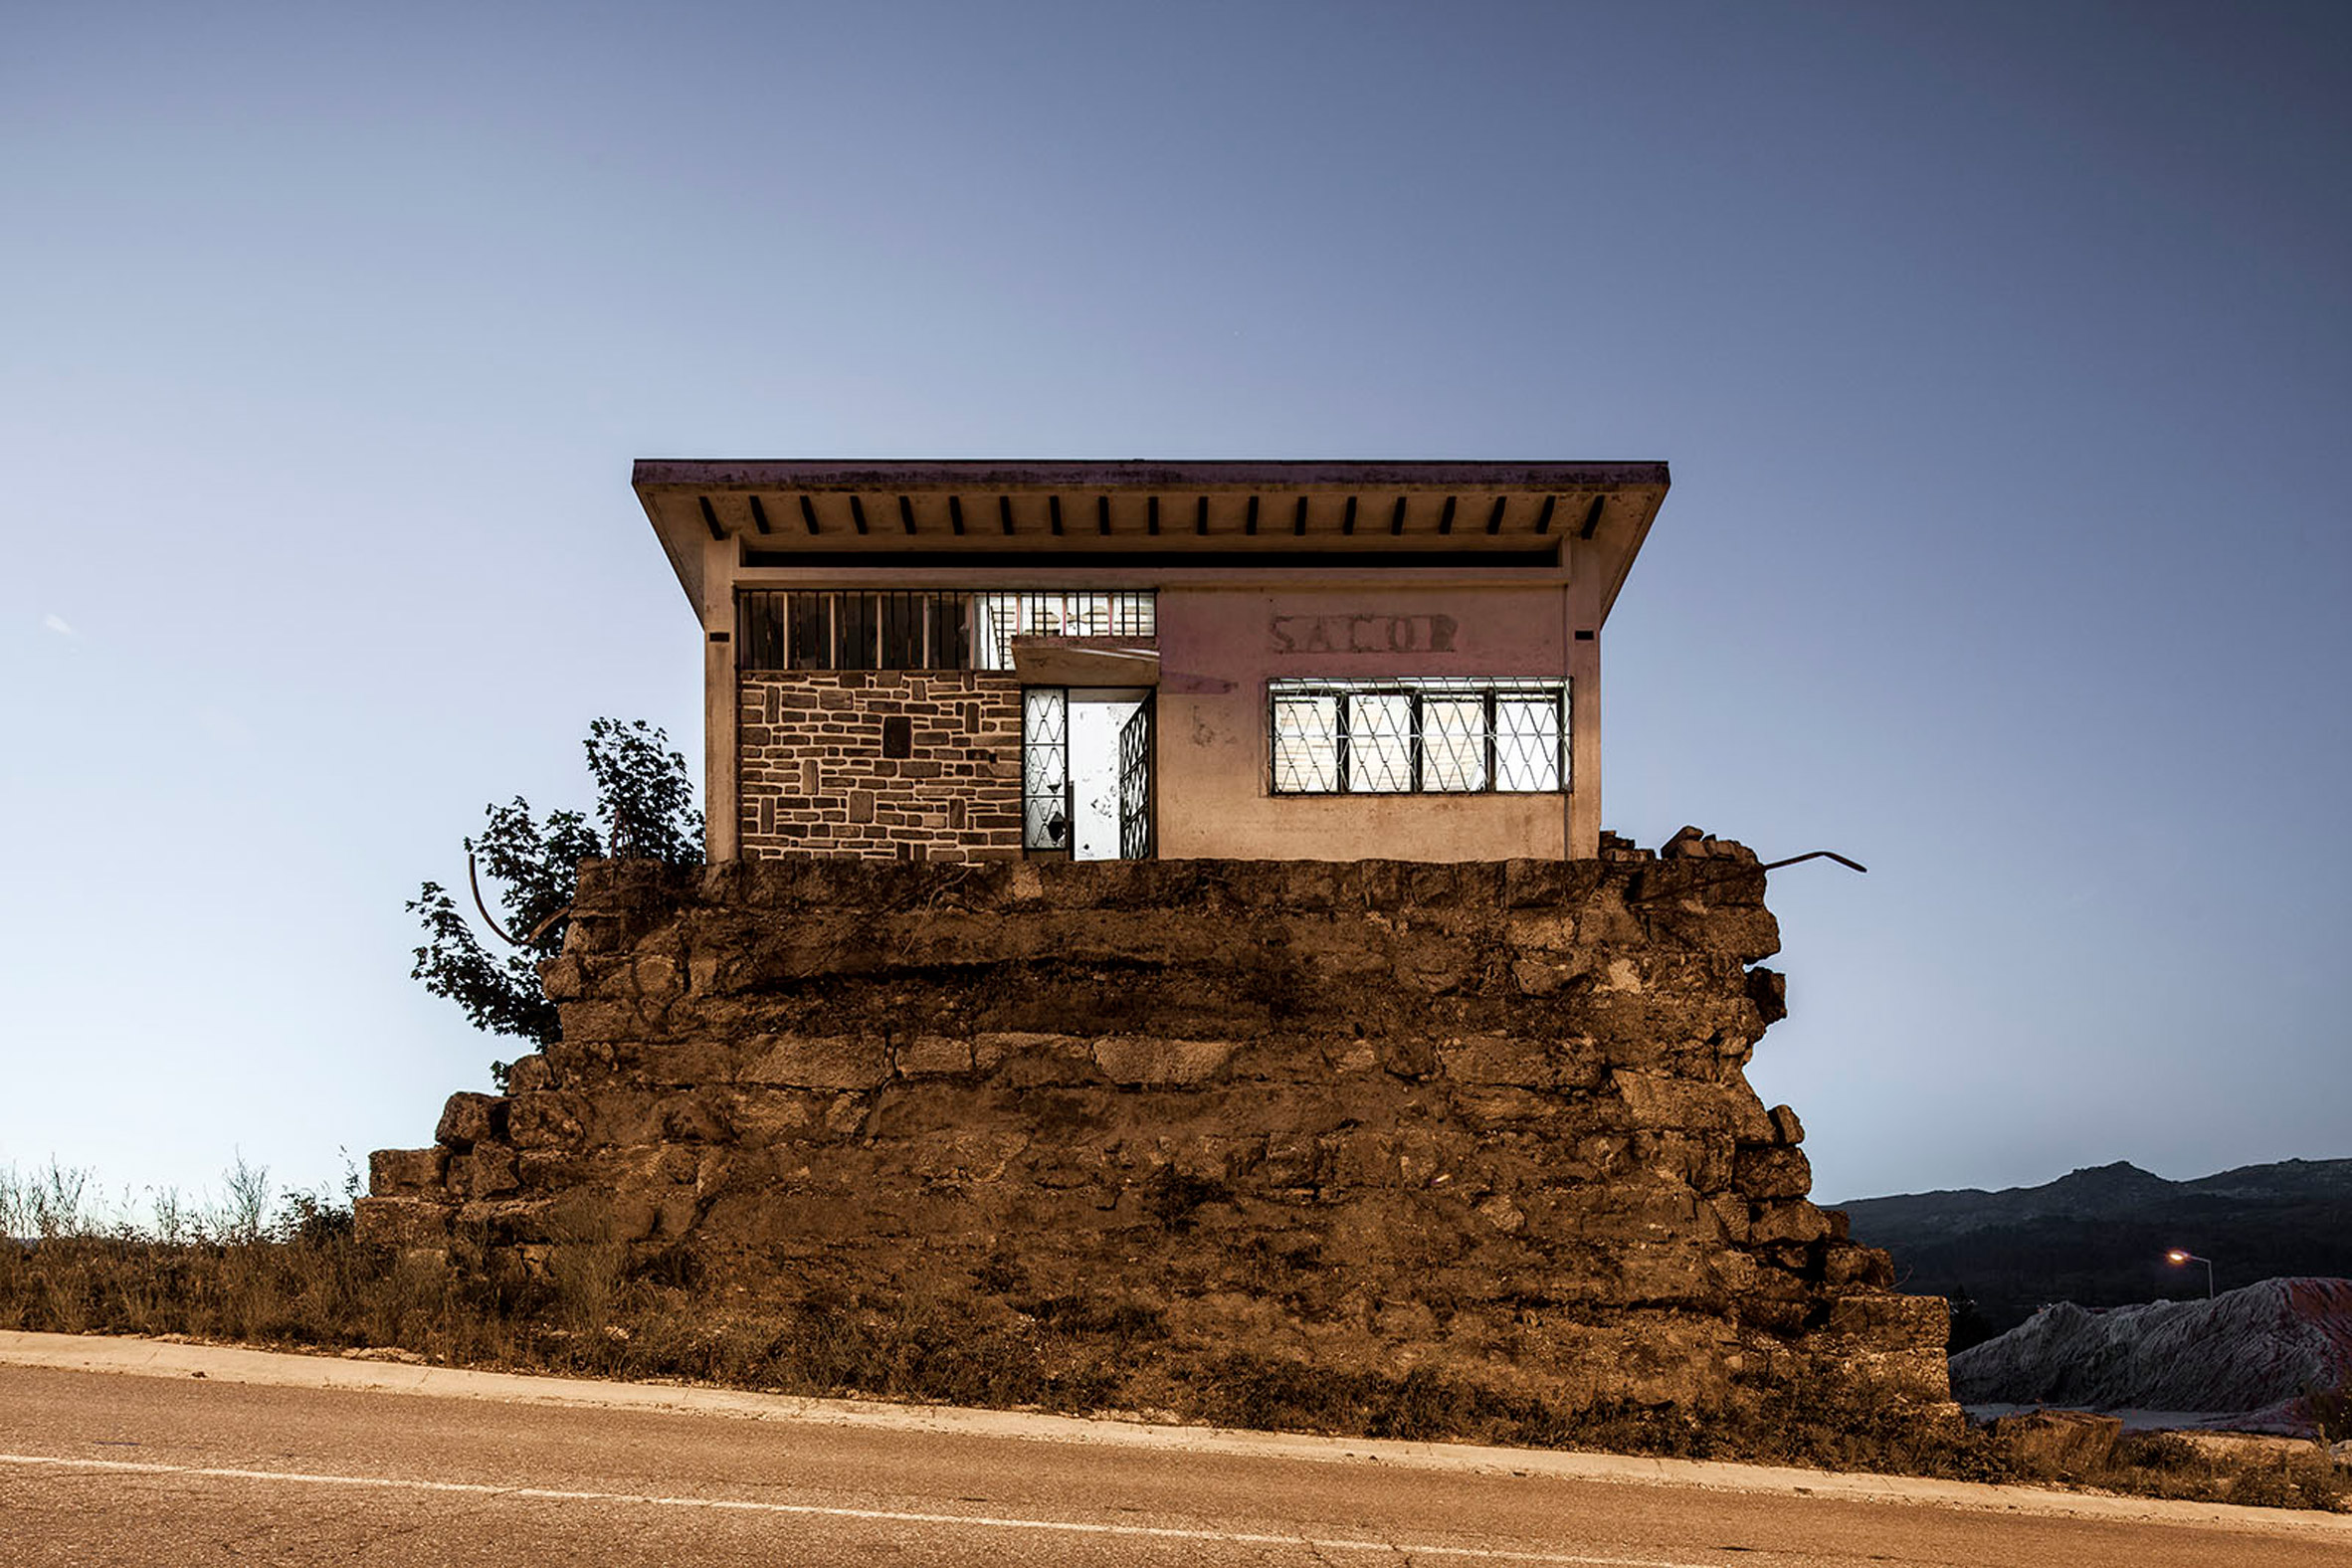 Nelson Garrido showcases buildings left empty after financial crisis hit Portugal